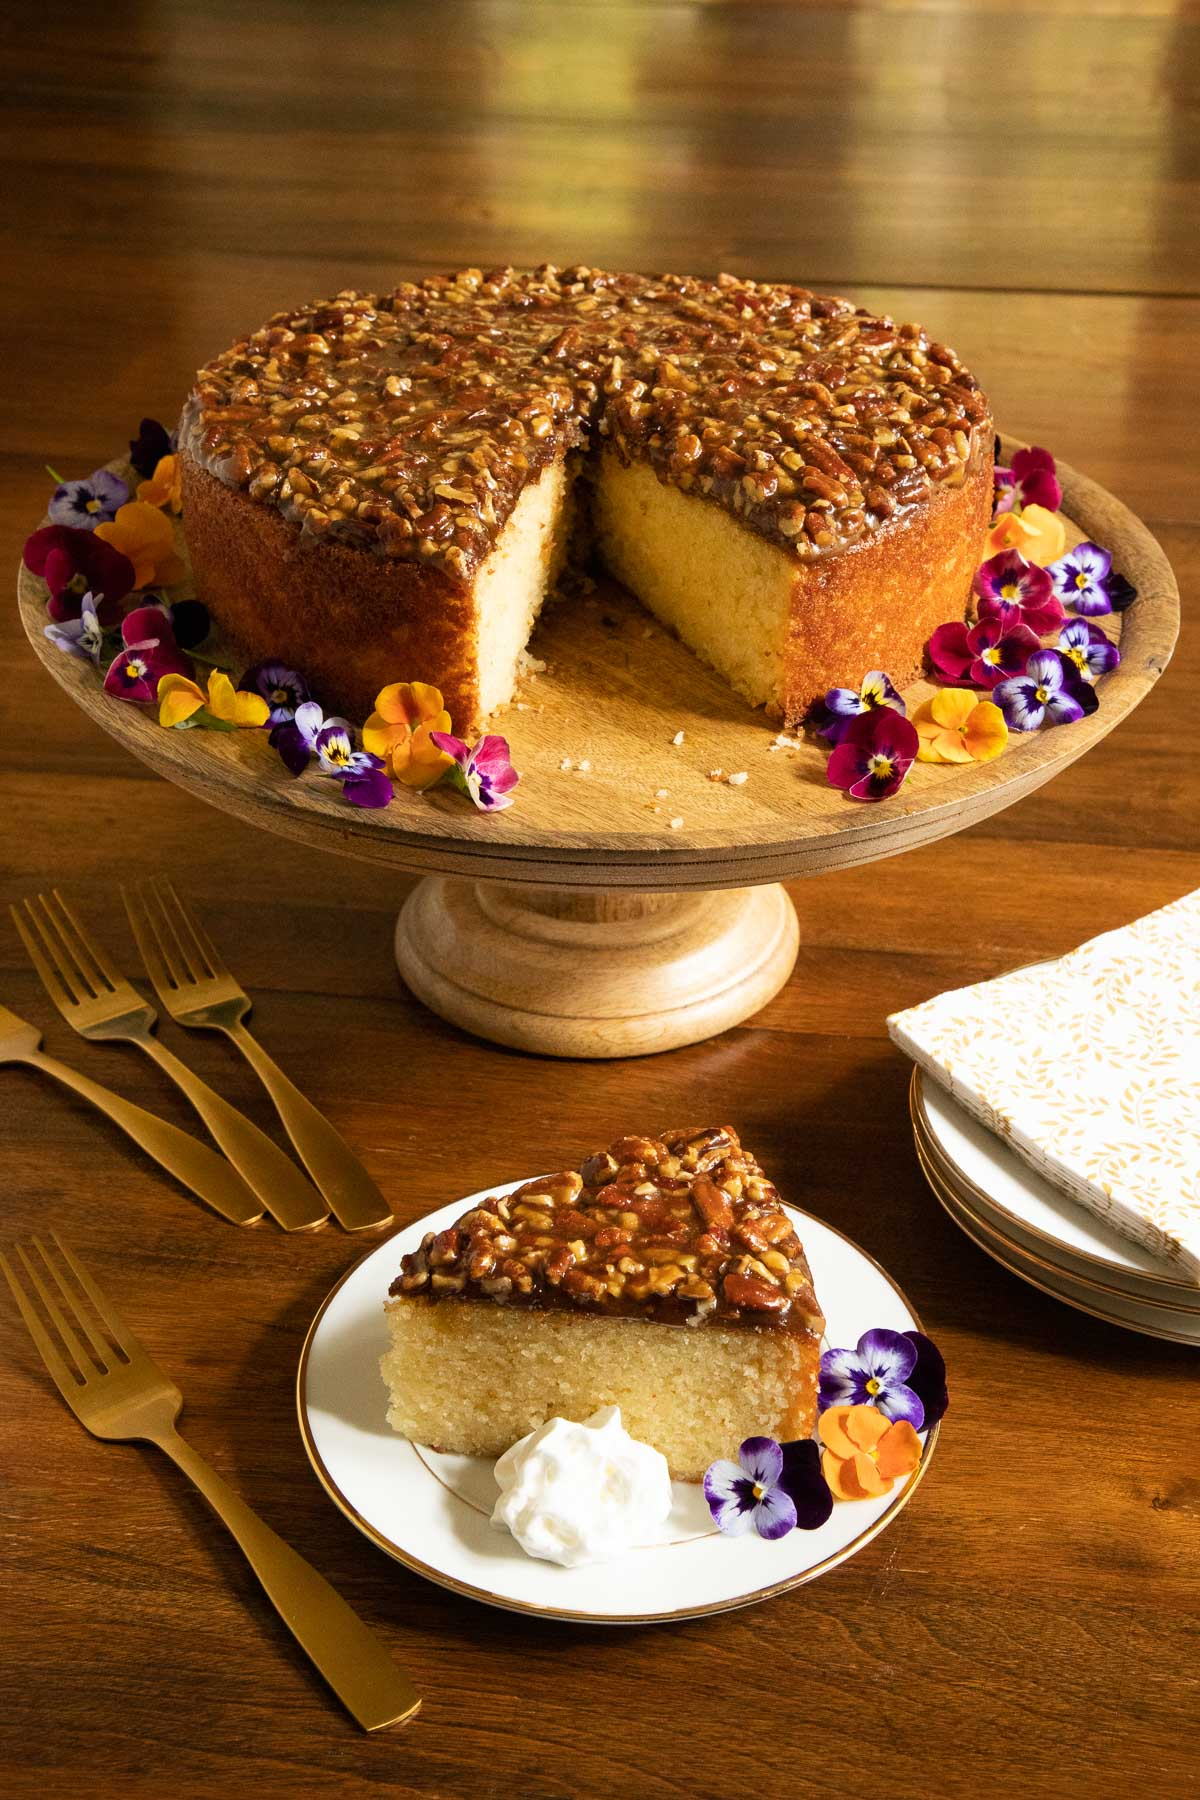 Vertical photo of a Ridiculously Easy Caramel Pecan Buttermilk Cake on a wood pedestal cake stand with a slice of the cake on a white plate in the foreground.